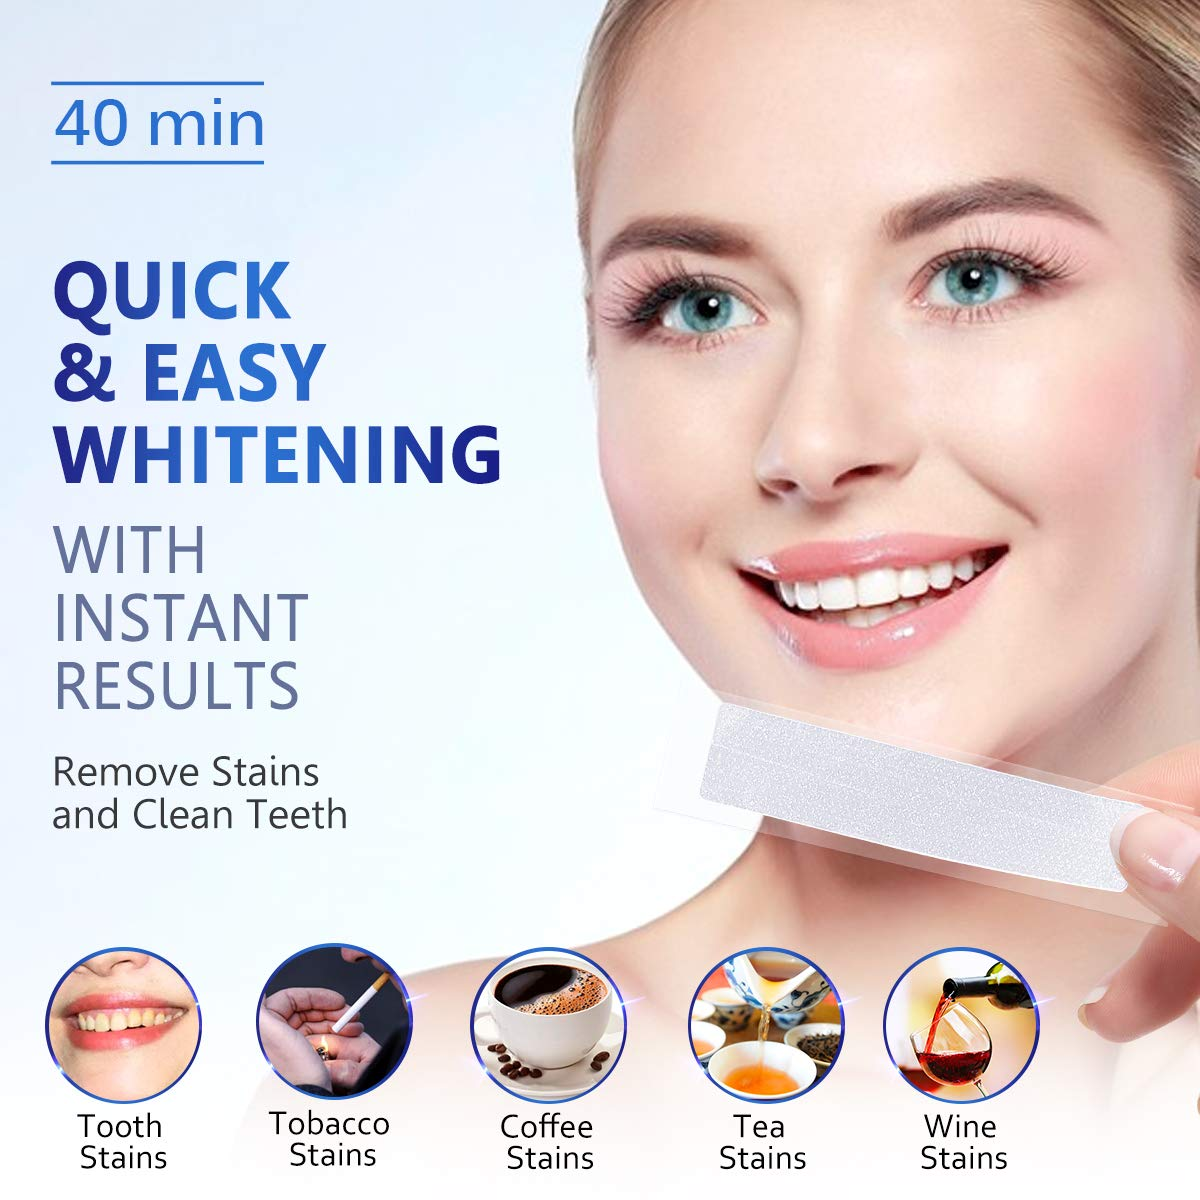 Teeth Whitening Kit,MayBeau 40Pcs Teeth Whitening Strips with Light,Professional Tooth Whitener Kit Tooth Enamel Safe Non Slip Adhesive,Remove Stains,Fast Result No Sensitivity